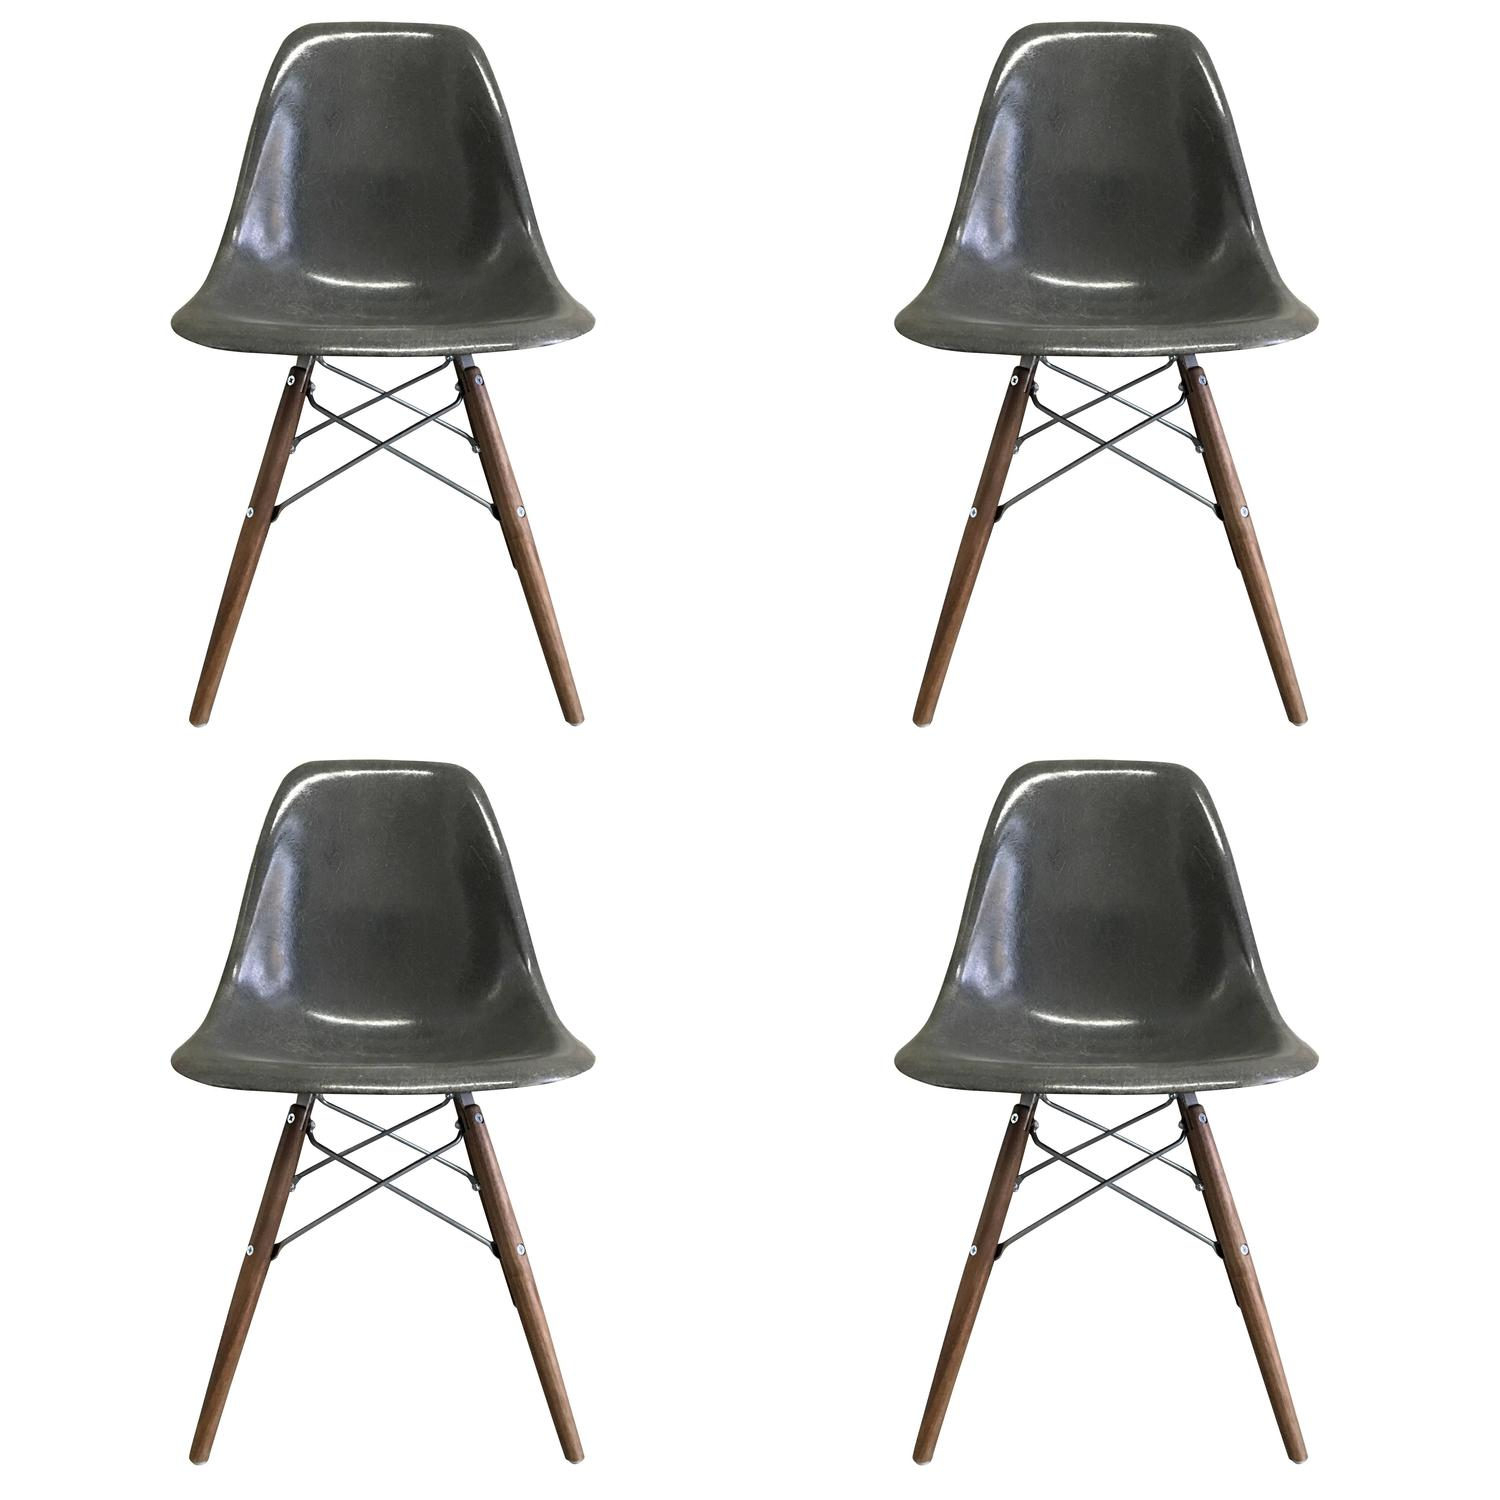 Four Herman Miller Eames Elephant Grey Dining Chairs For